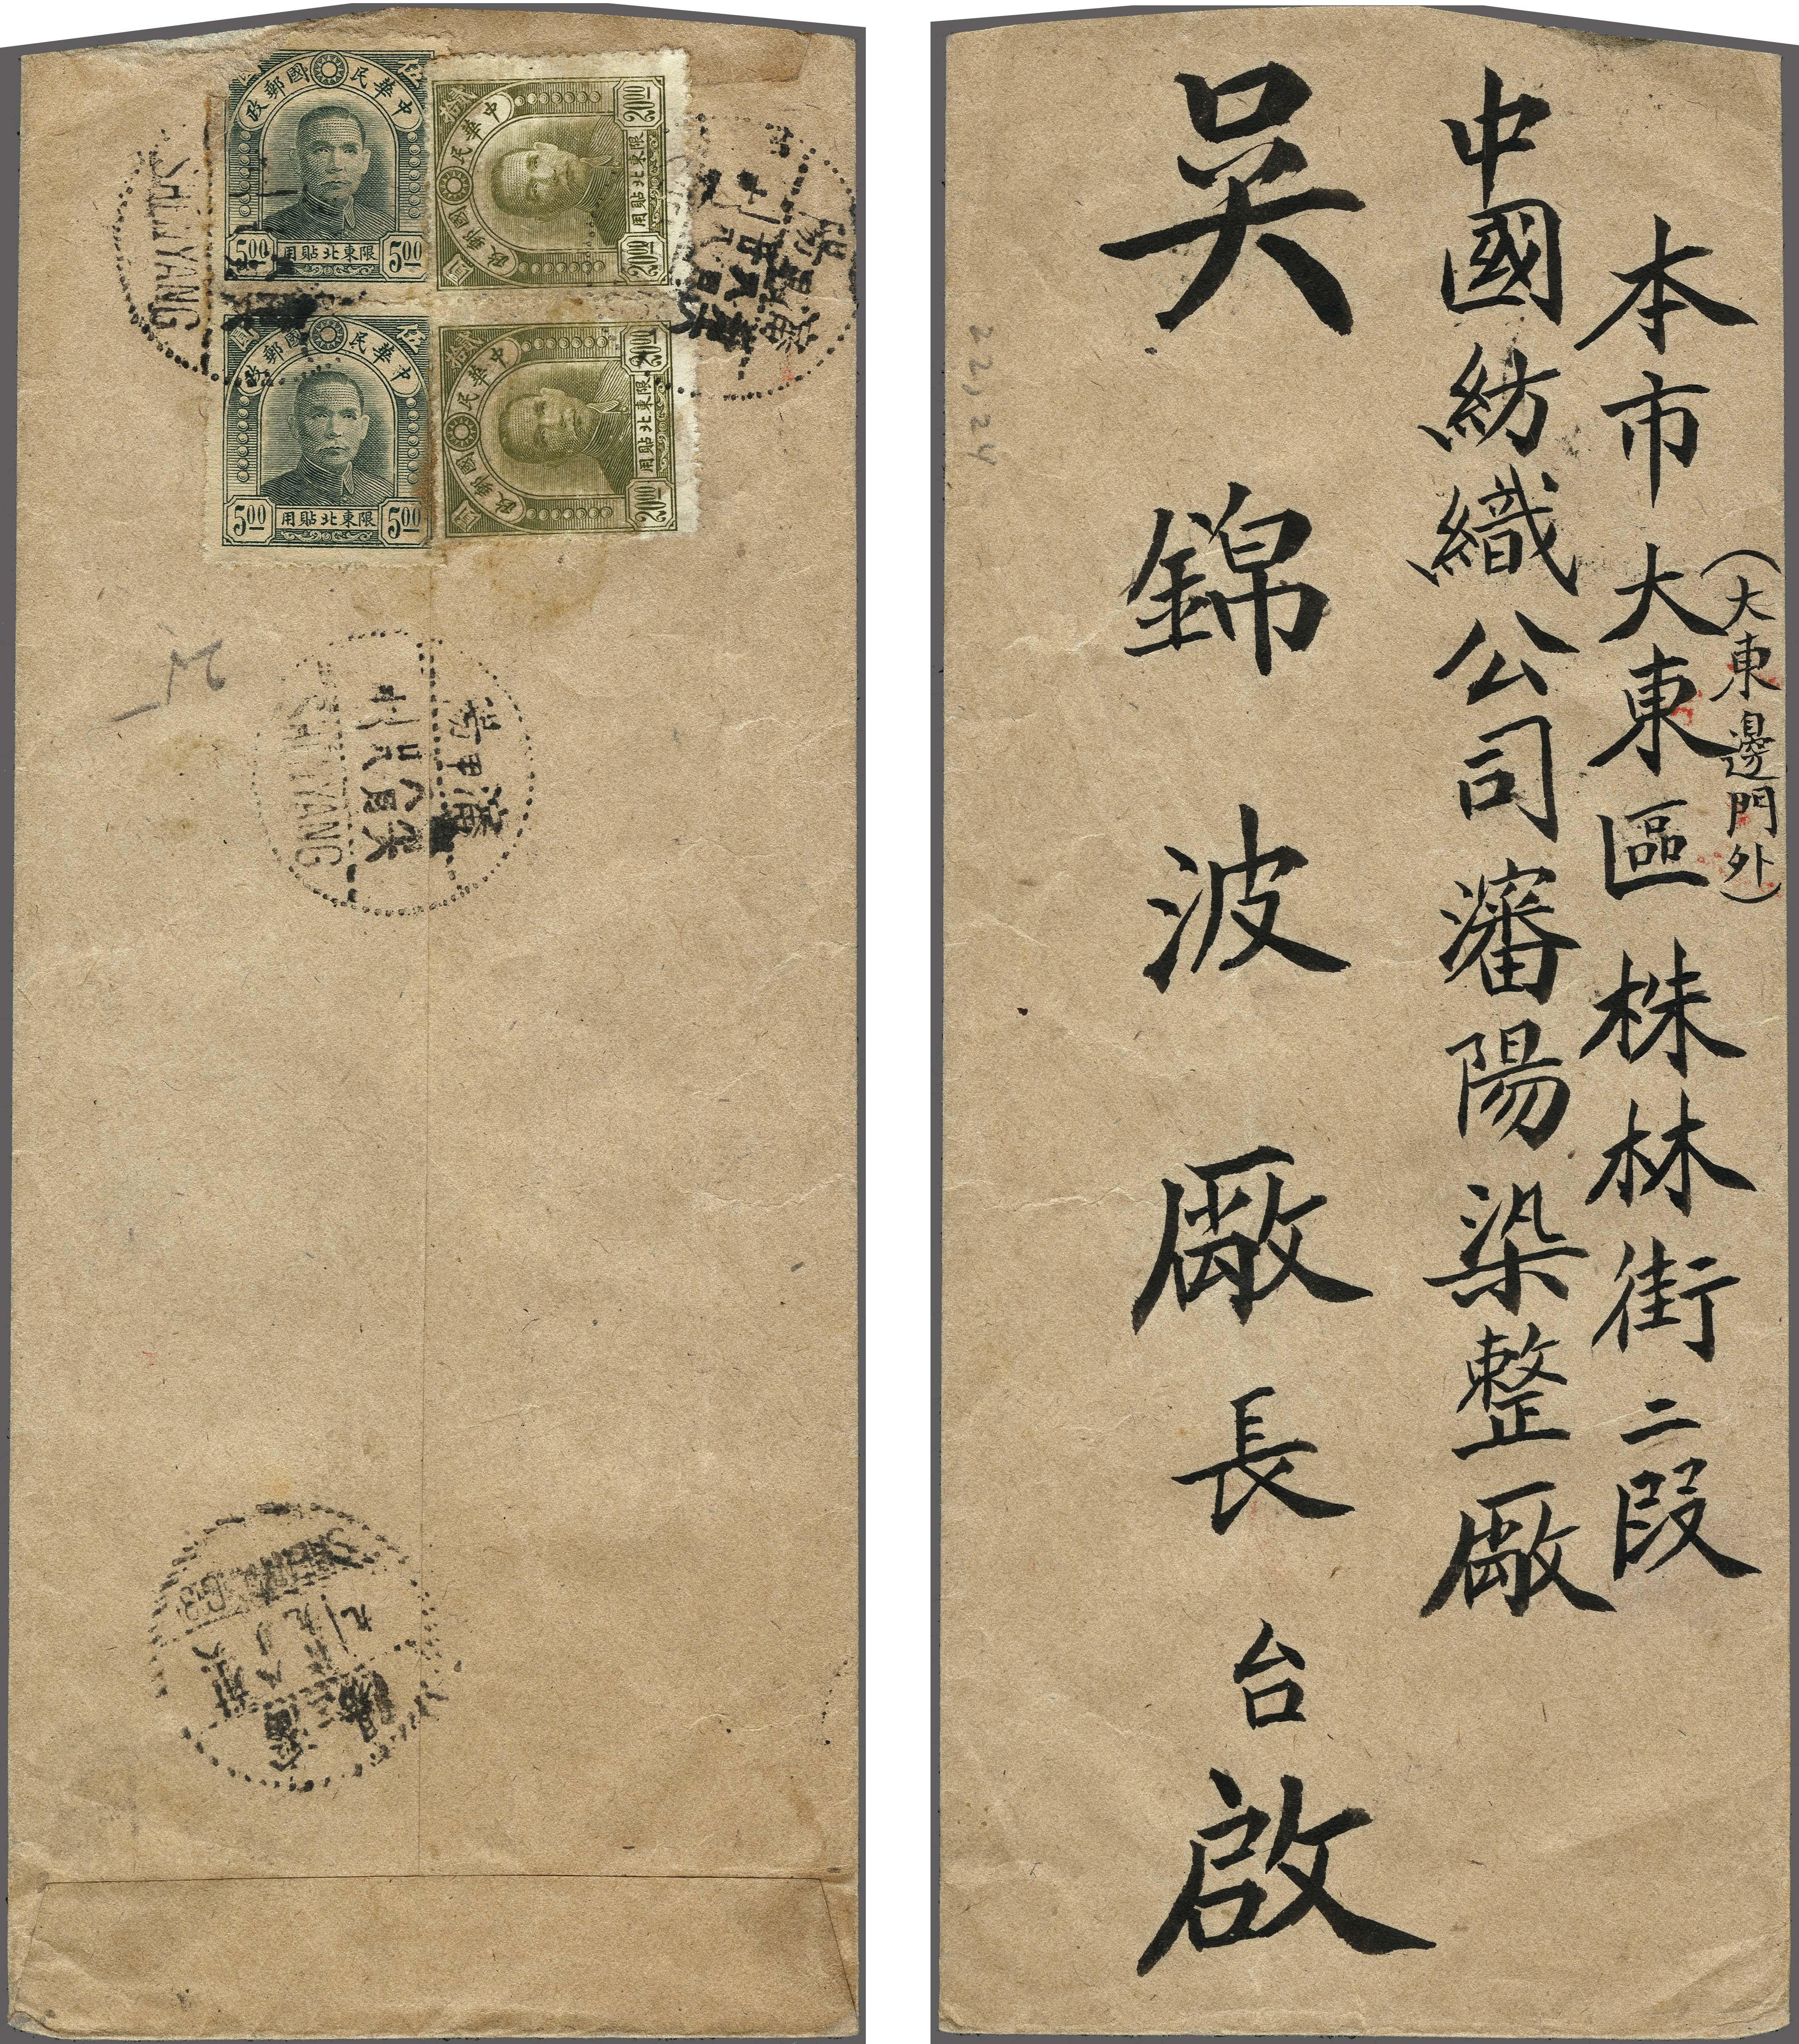 Lot 51 - China China Northeast Provinces -  Corinphila Veilingen Auction 250-253 - Day 1 - Foreign countries